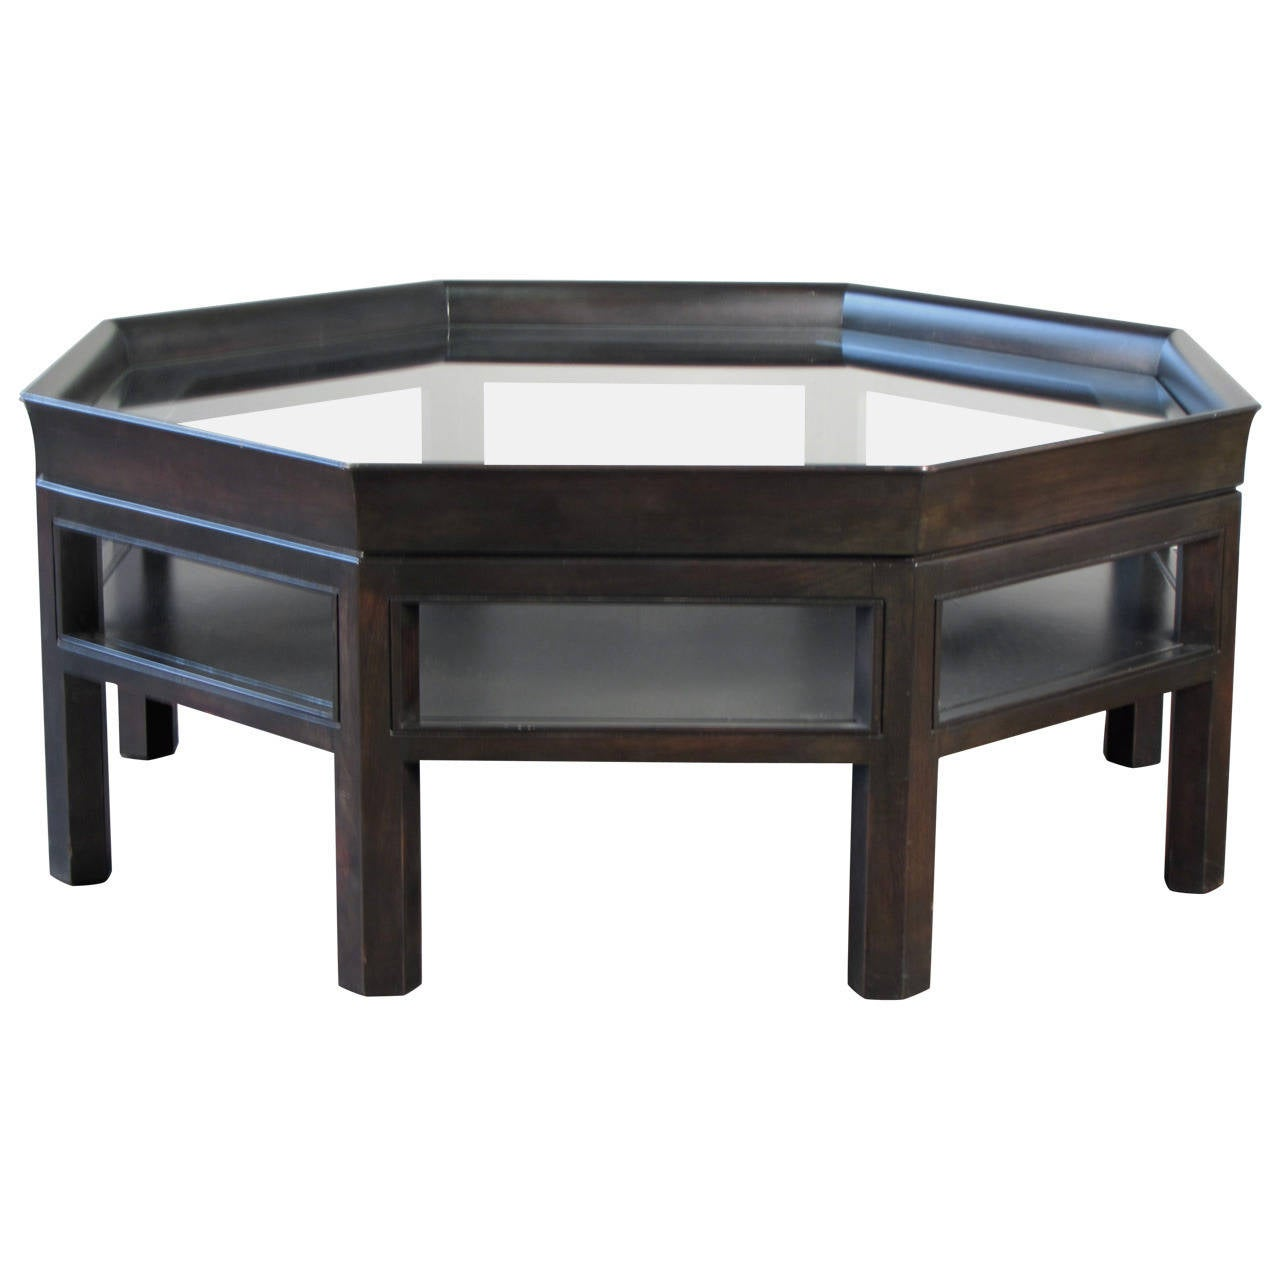 Octagonal coffee table by baker furniture at 1stdibs One of a kind coffee tables